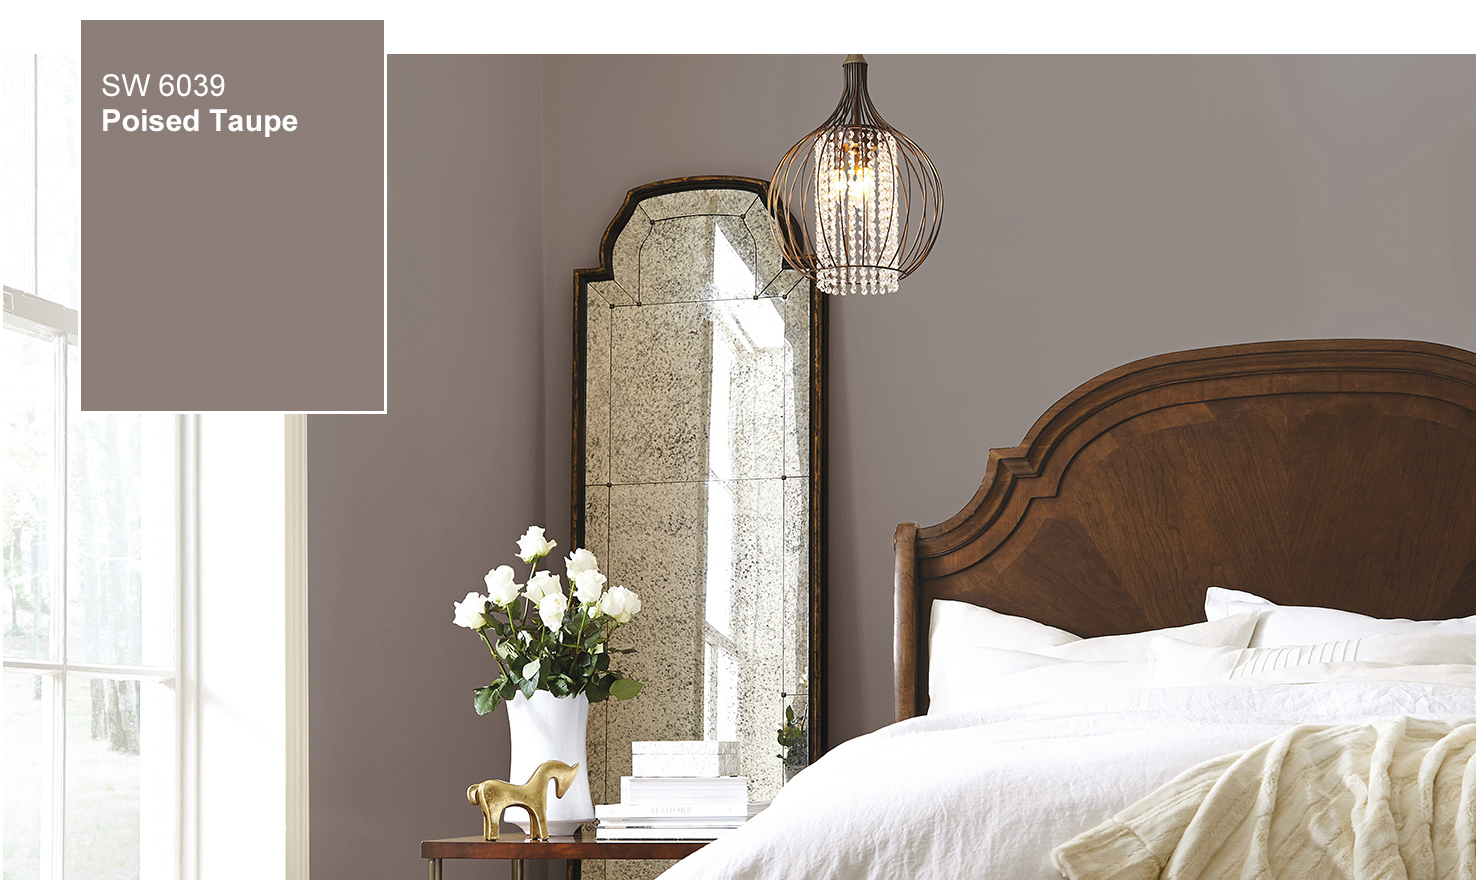 Taupe Bedroom Introducing The 2017 Color Of The Year Poised Taupe Sw 6039